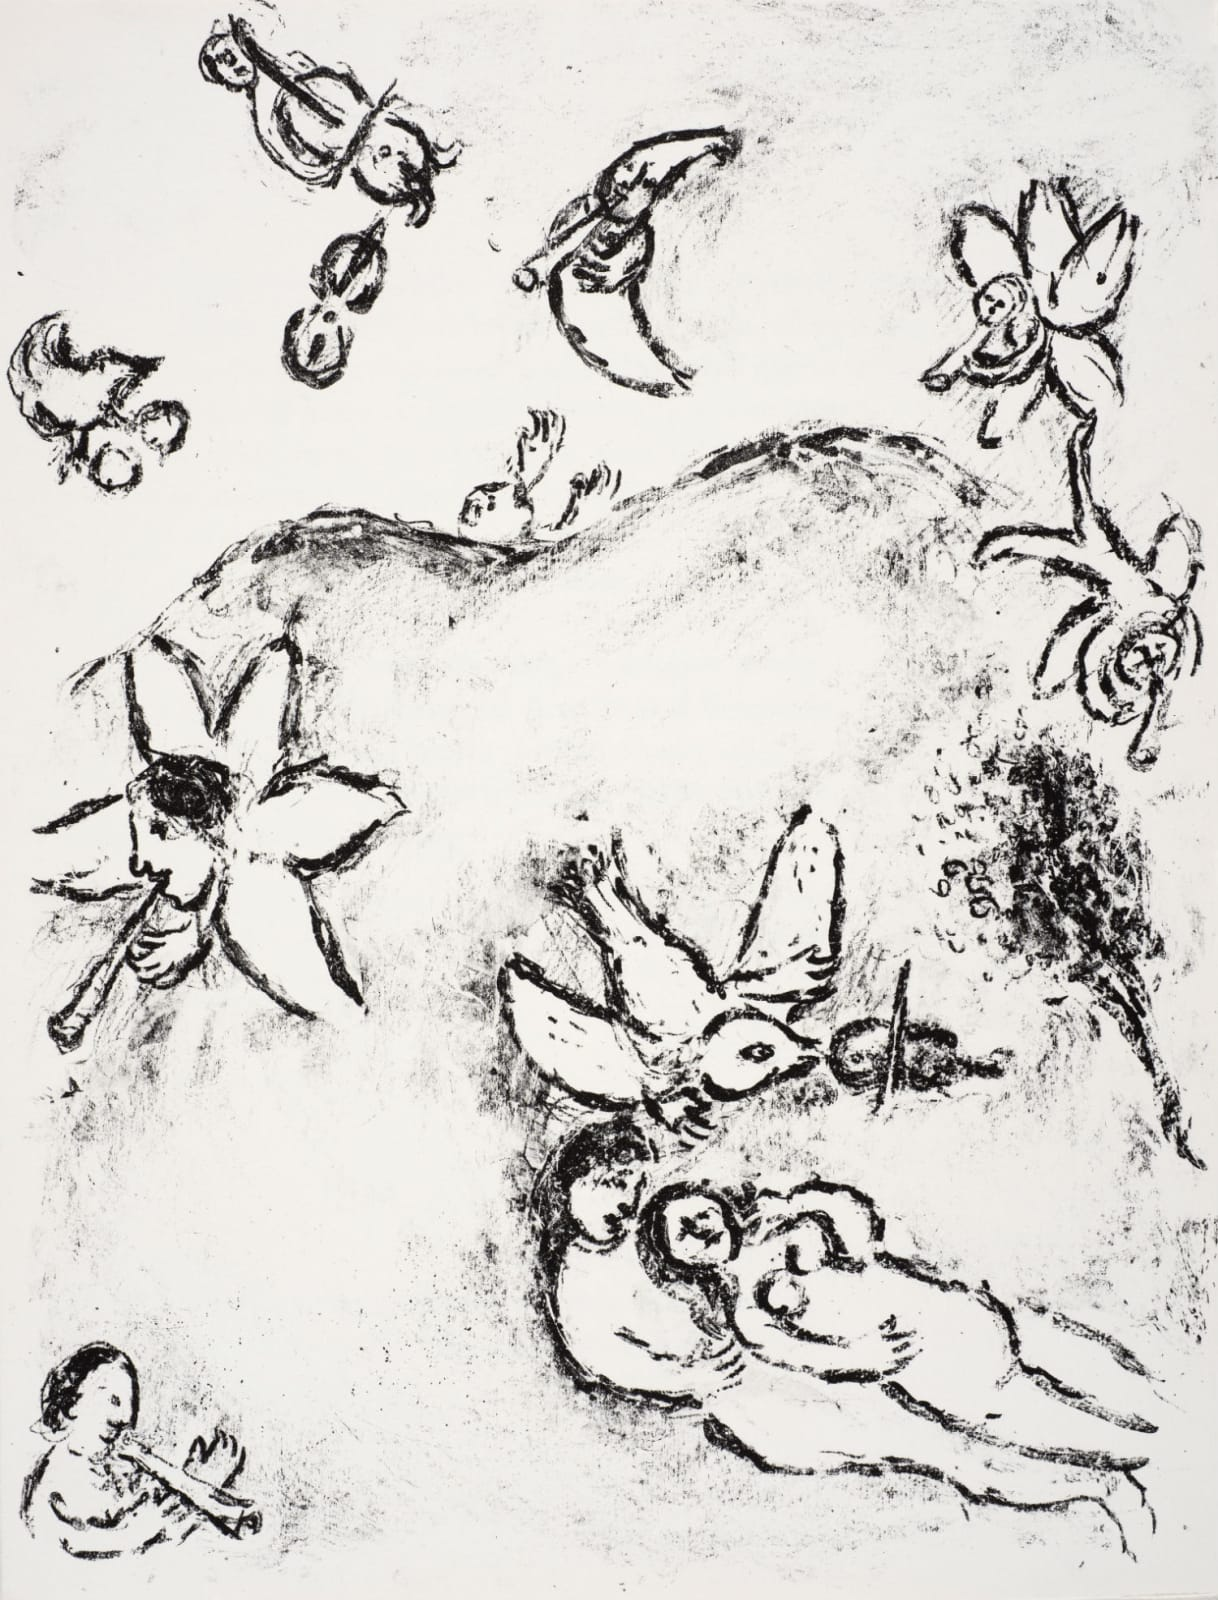 Marc Chagall (1887-1985) Ferdinand and Miranda make Love (Series: Shakespeare The Tempest) 1975 Lithograph 42.5 x 32.5 cm Ben Uri Collection © Marc Chagall estate To see and discover more about this artist click here